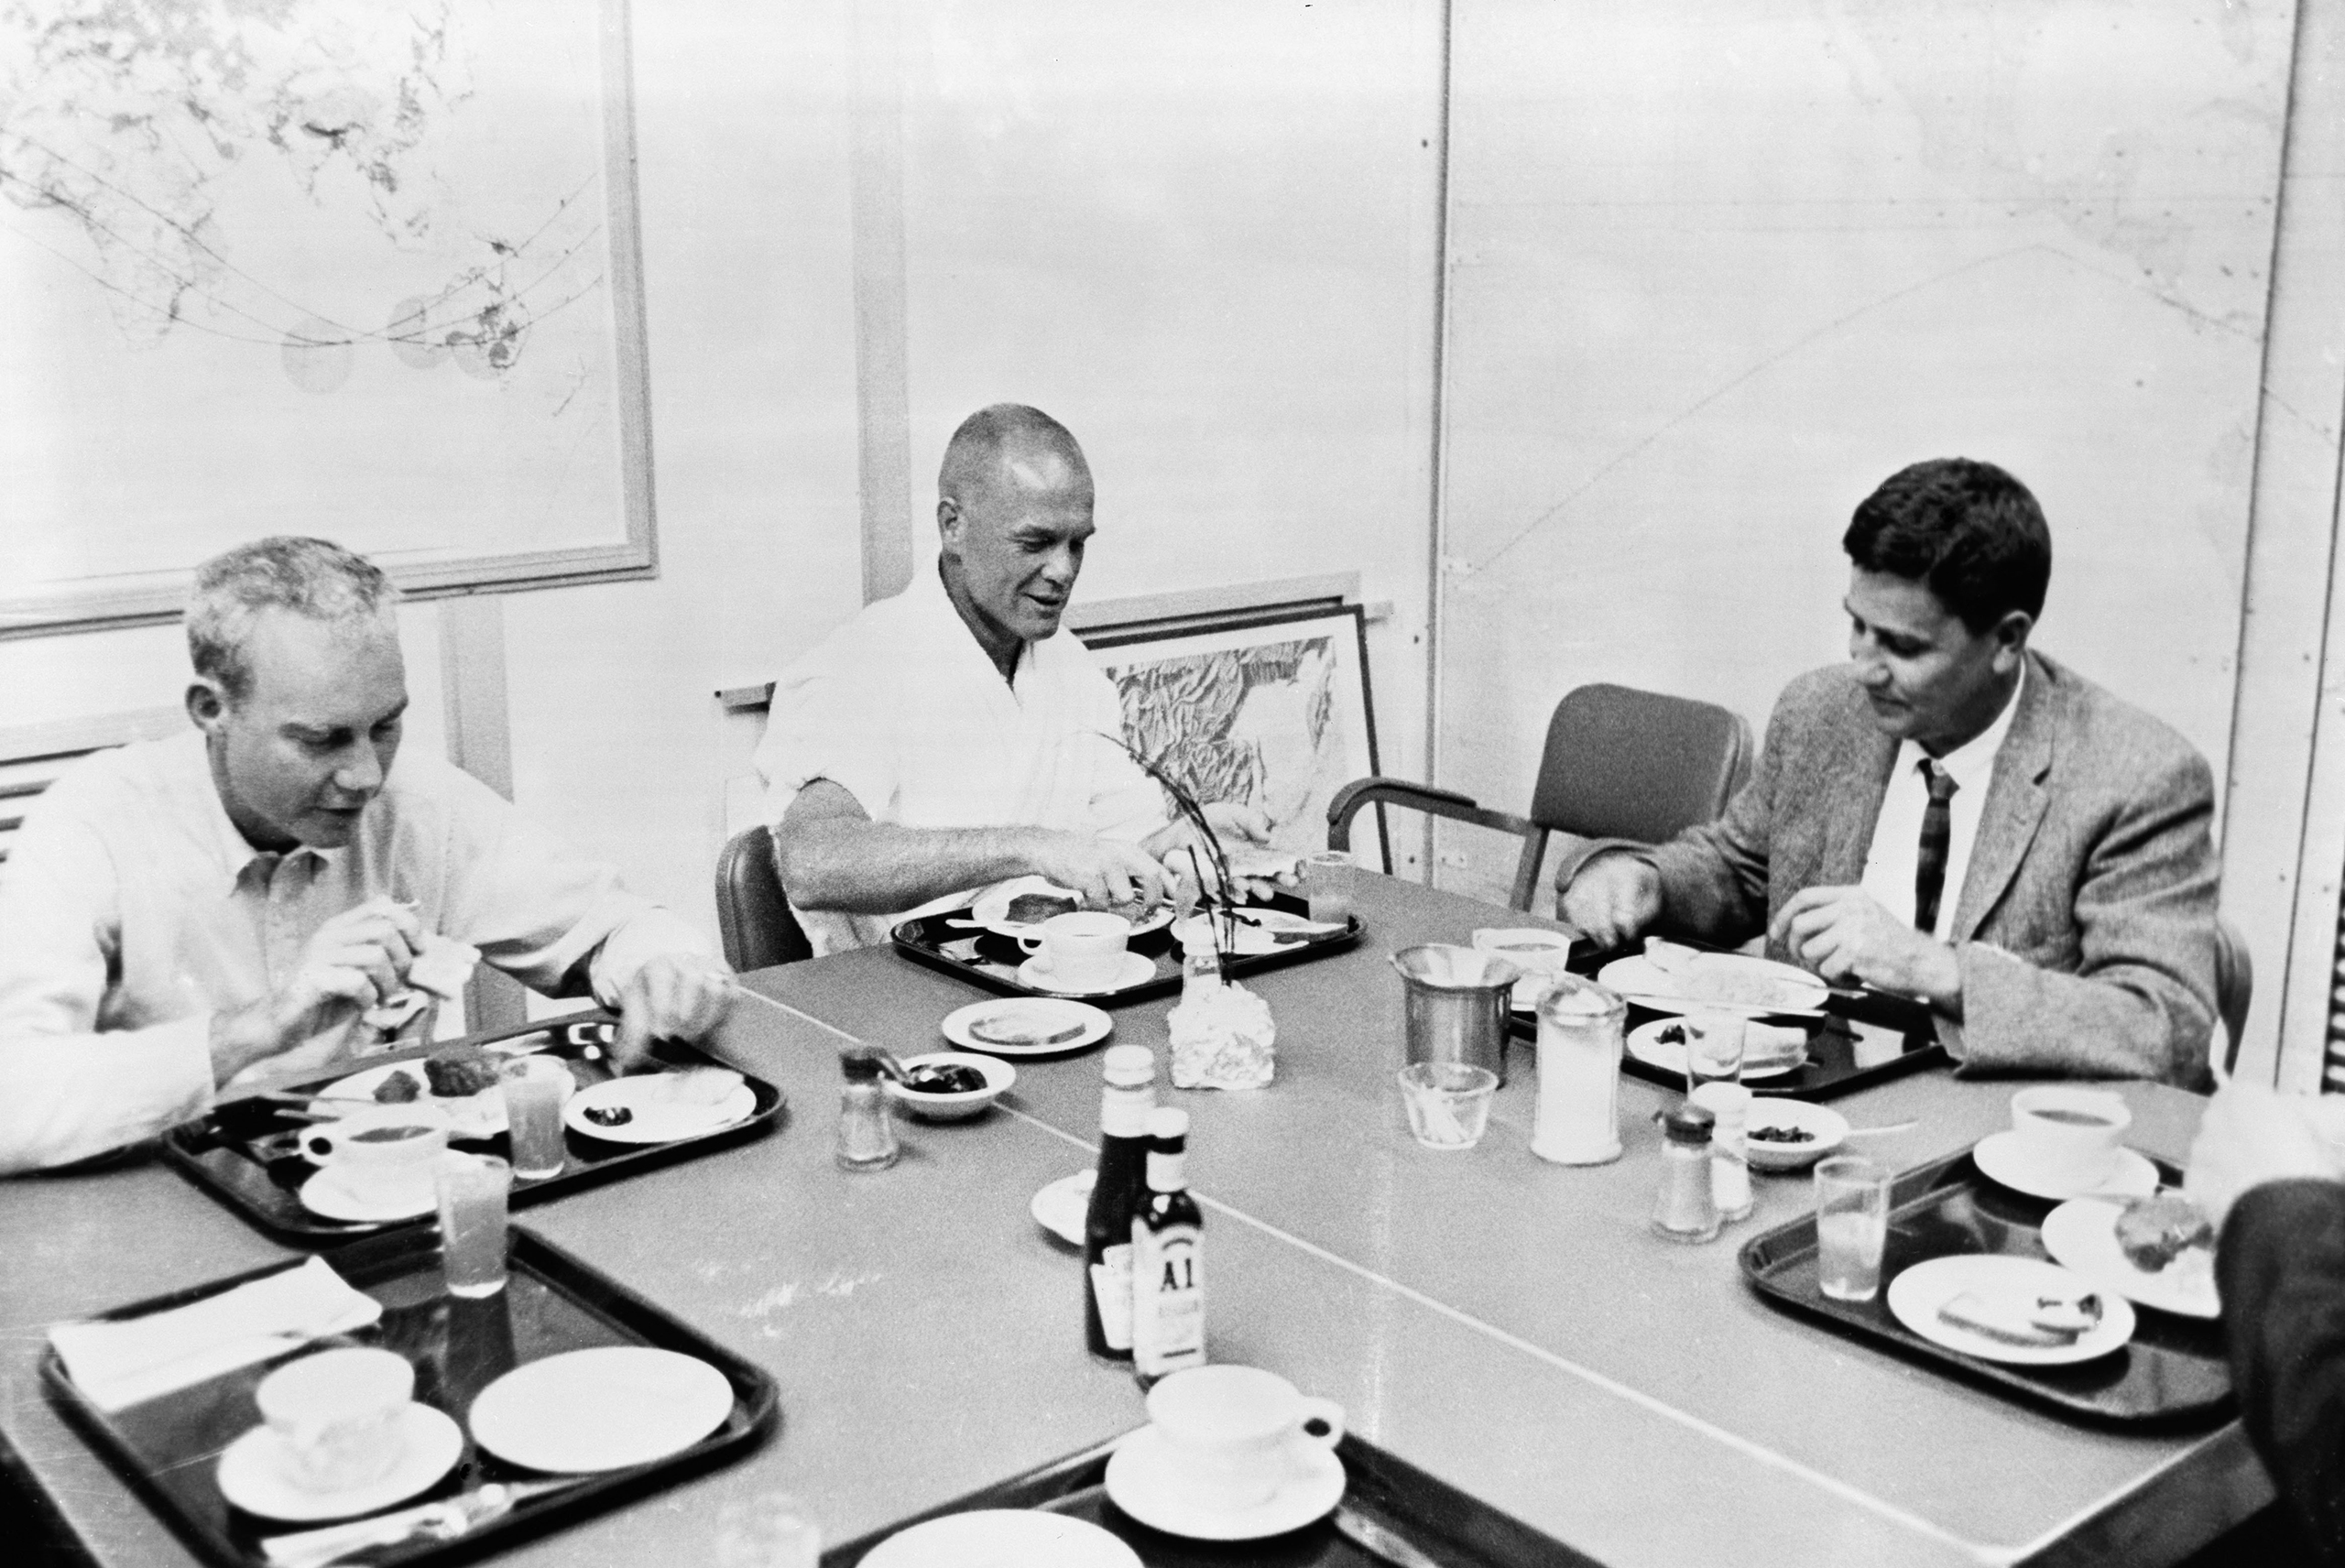 <b>Food for Flight</b>                                   Glenn, center, has his prelaunch breakfast on Feb. 20, 1962, with two NASA officials. The traditional meal — steak, eggs, toast, coffee and juice — was a surprisingly heavy one for a man about to experience the stomach-flipping phenomenon of zero g.